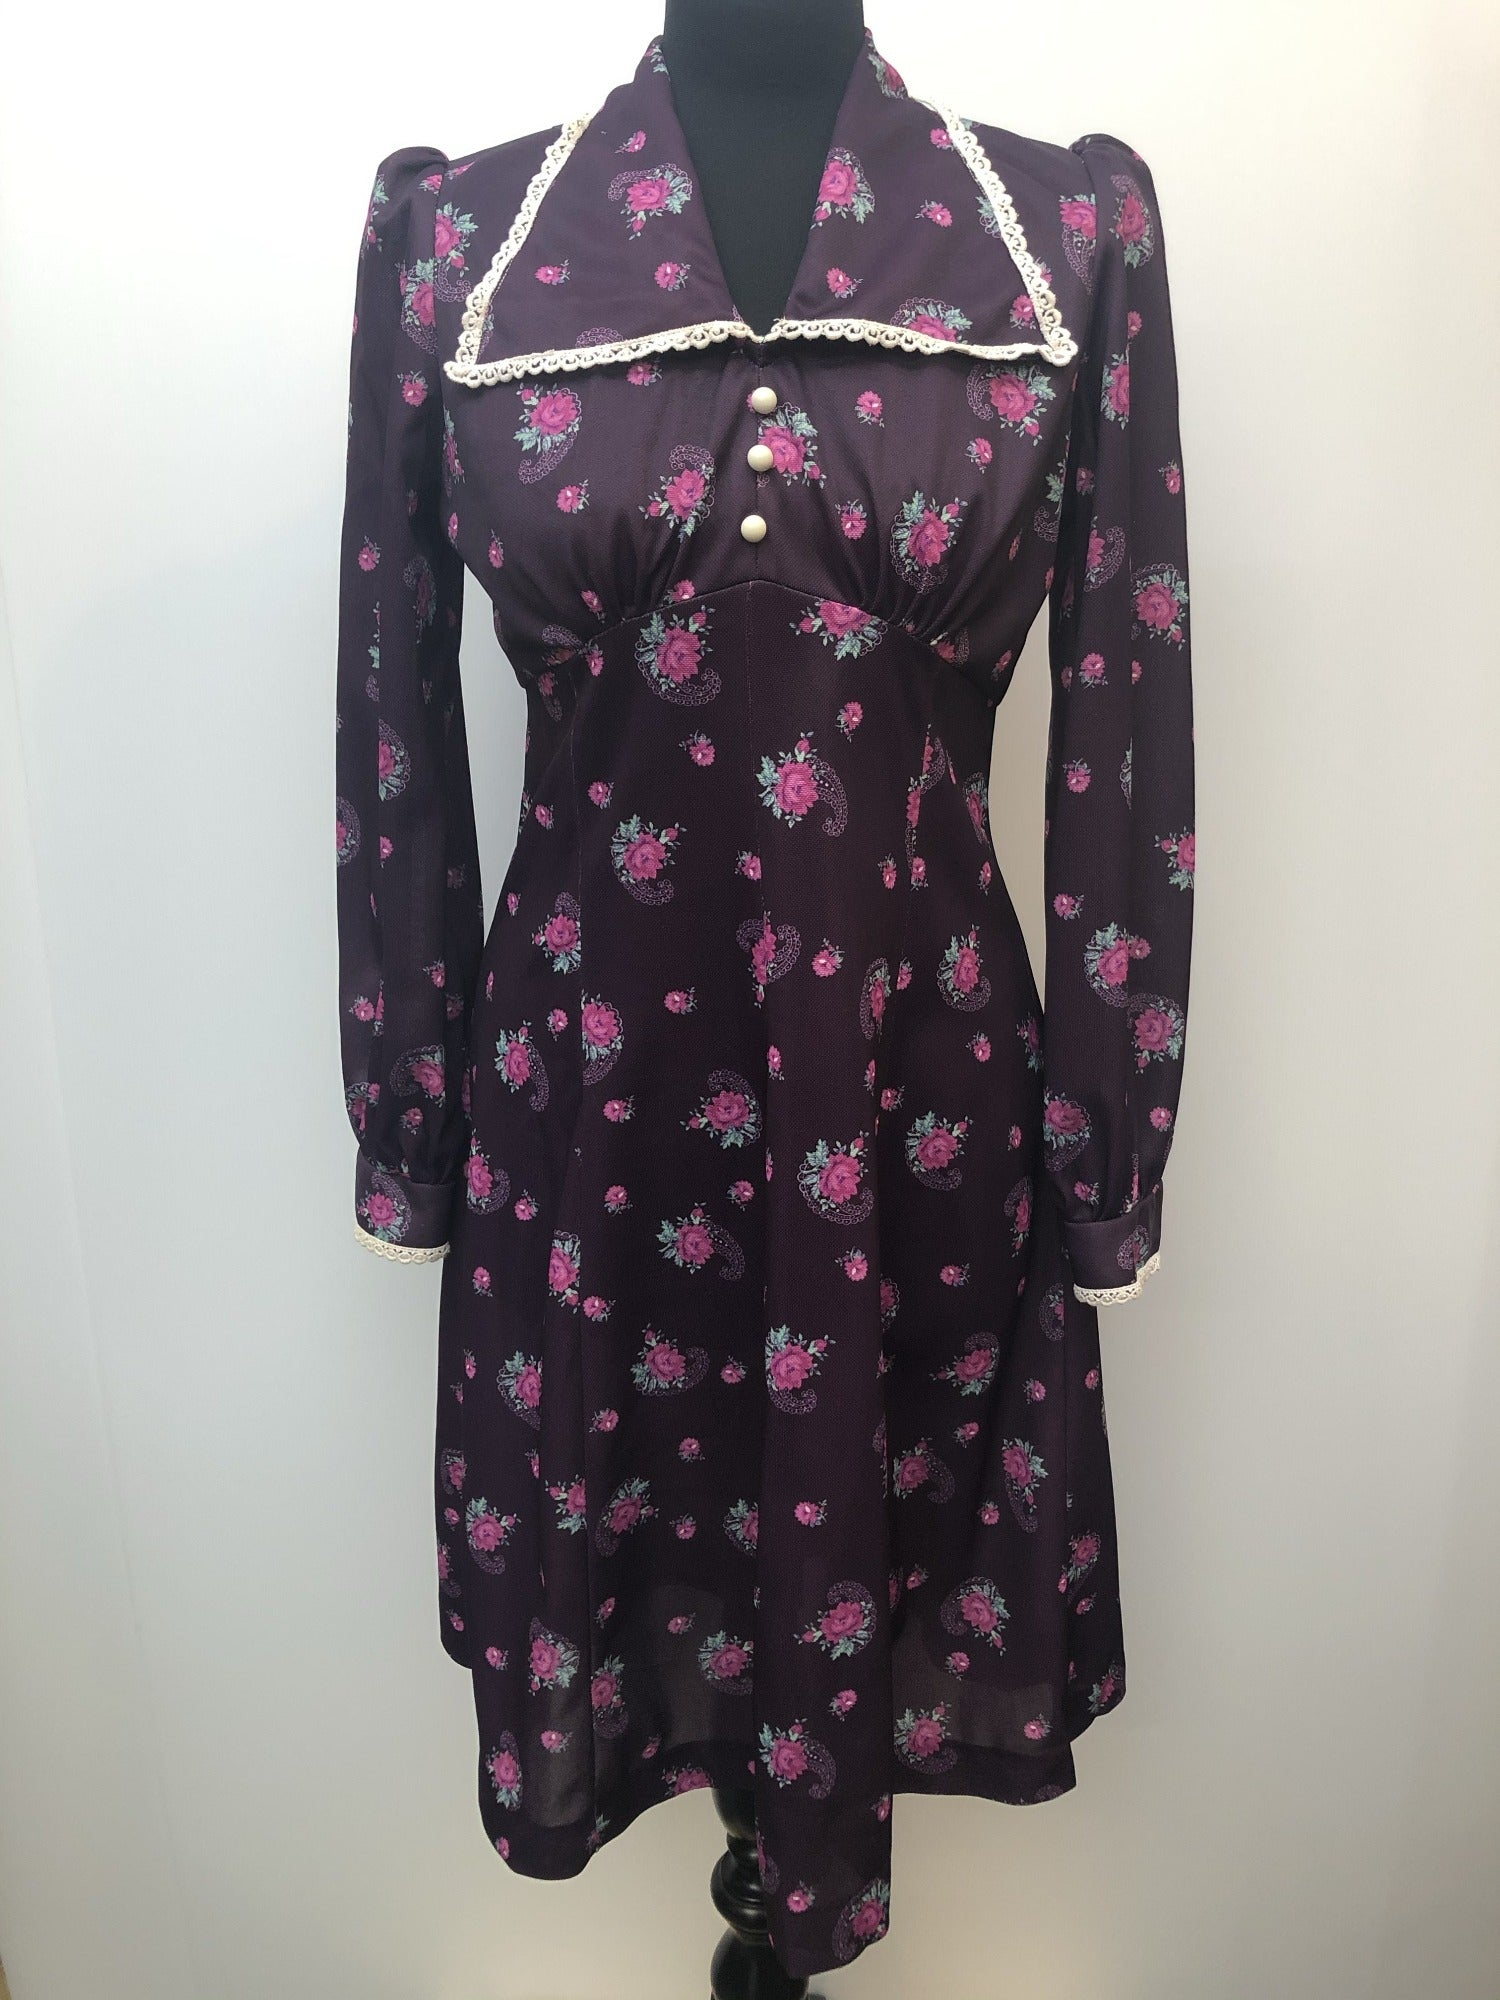 womens  vintage  purple  prairie dress  midi dress  floral print  collar dress  collar  70s  1970s  10 urban village vintage